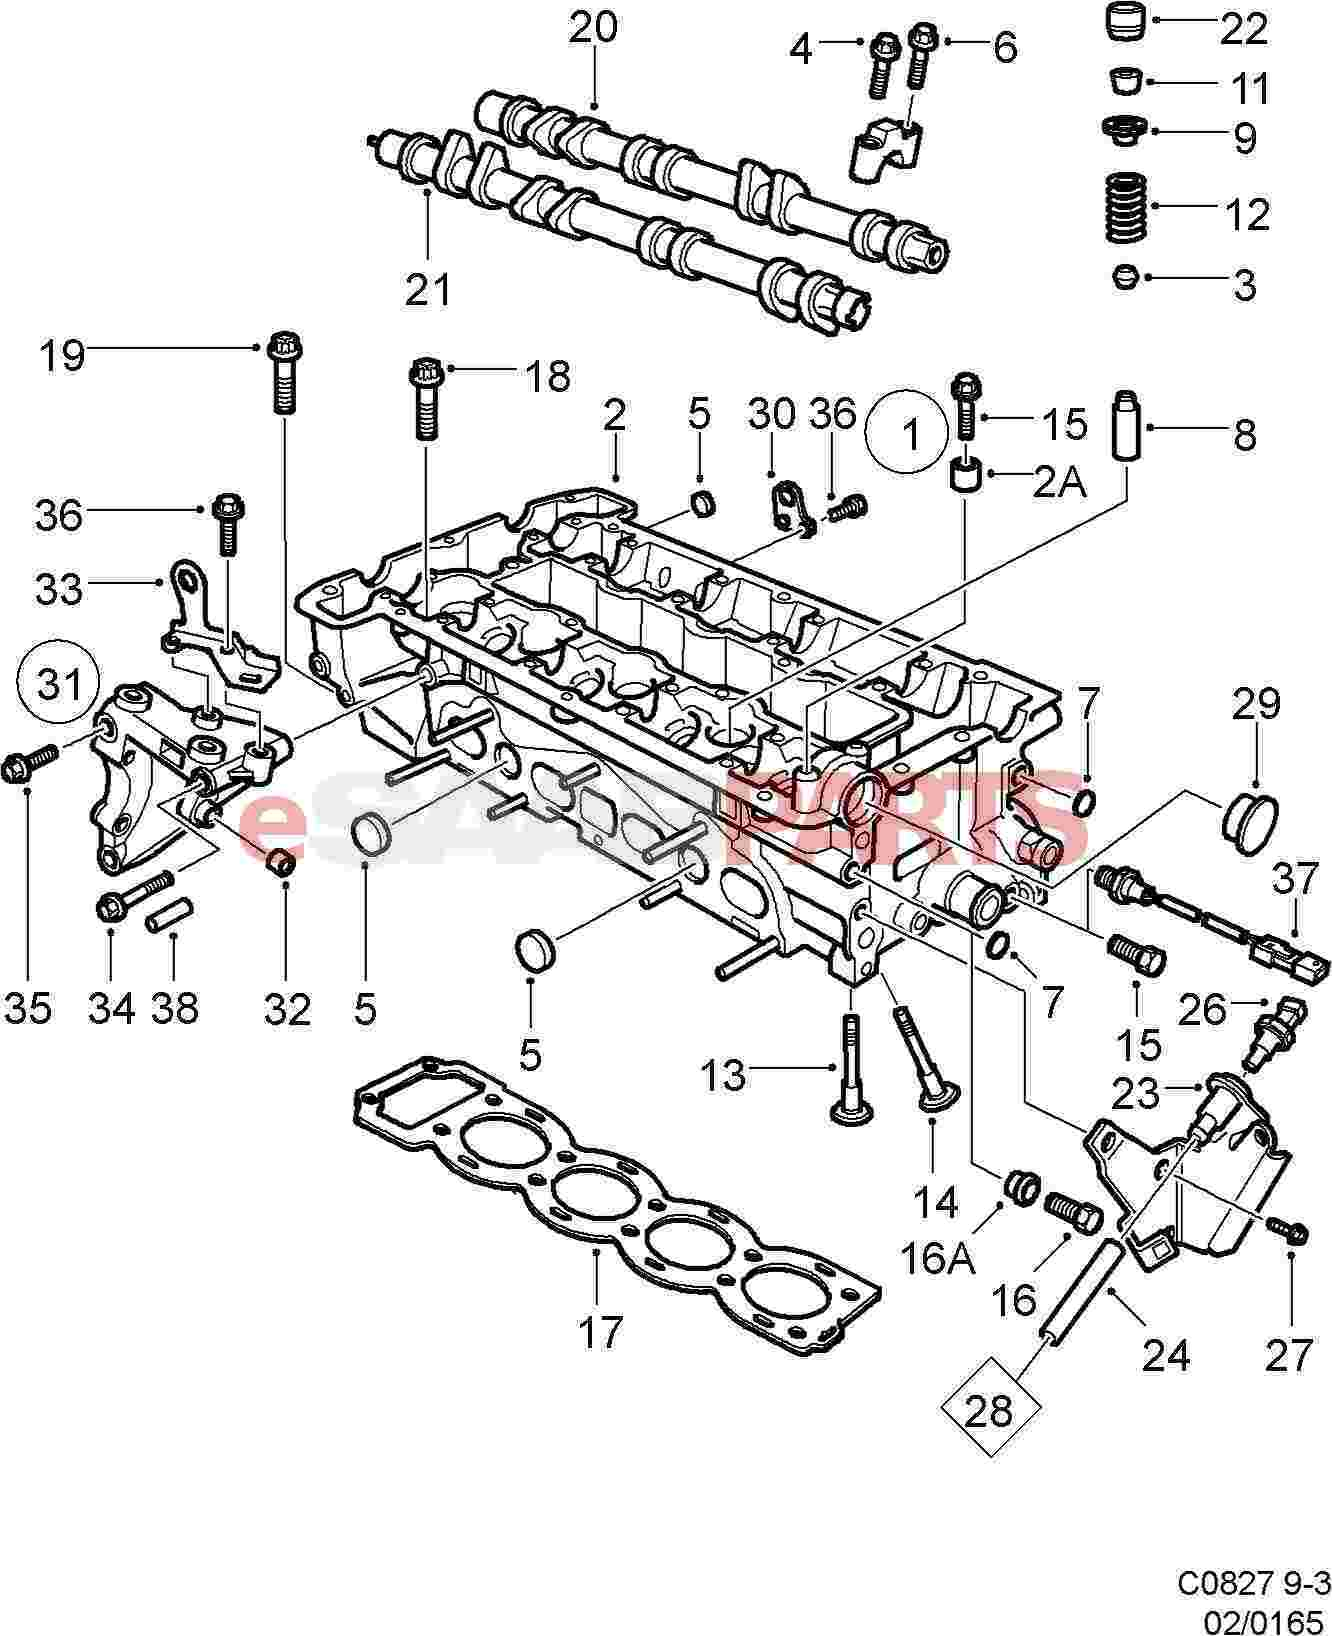 jetta fuse box diagram additionally saab 9 3 aero 1999 2001 saab 9 3